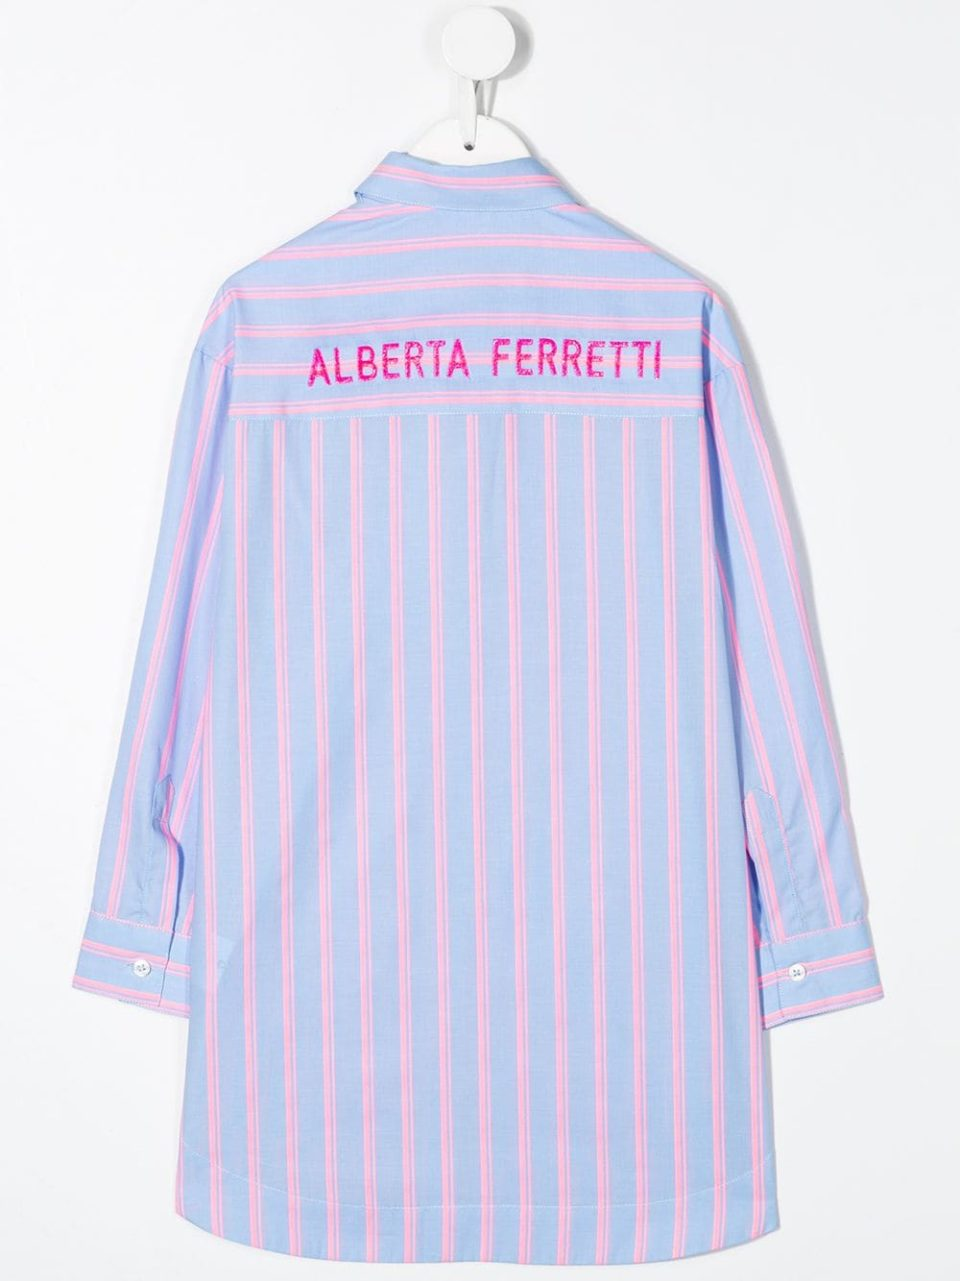 CharmPosh-x-Farfetch-Girls-Designer-Clothes-Alberta-Ferretti-Kids-Striped-Print-Shirt-CharmPosh